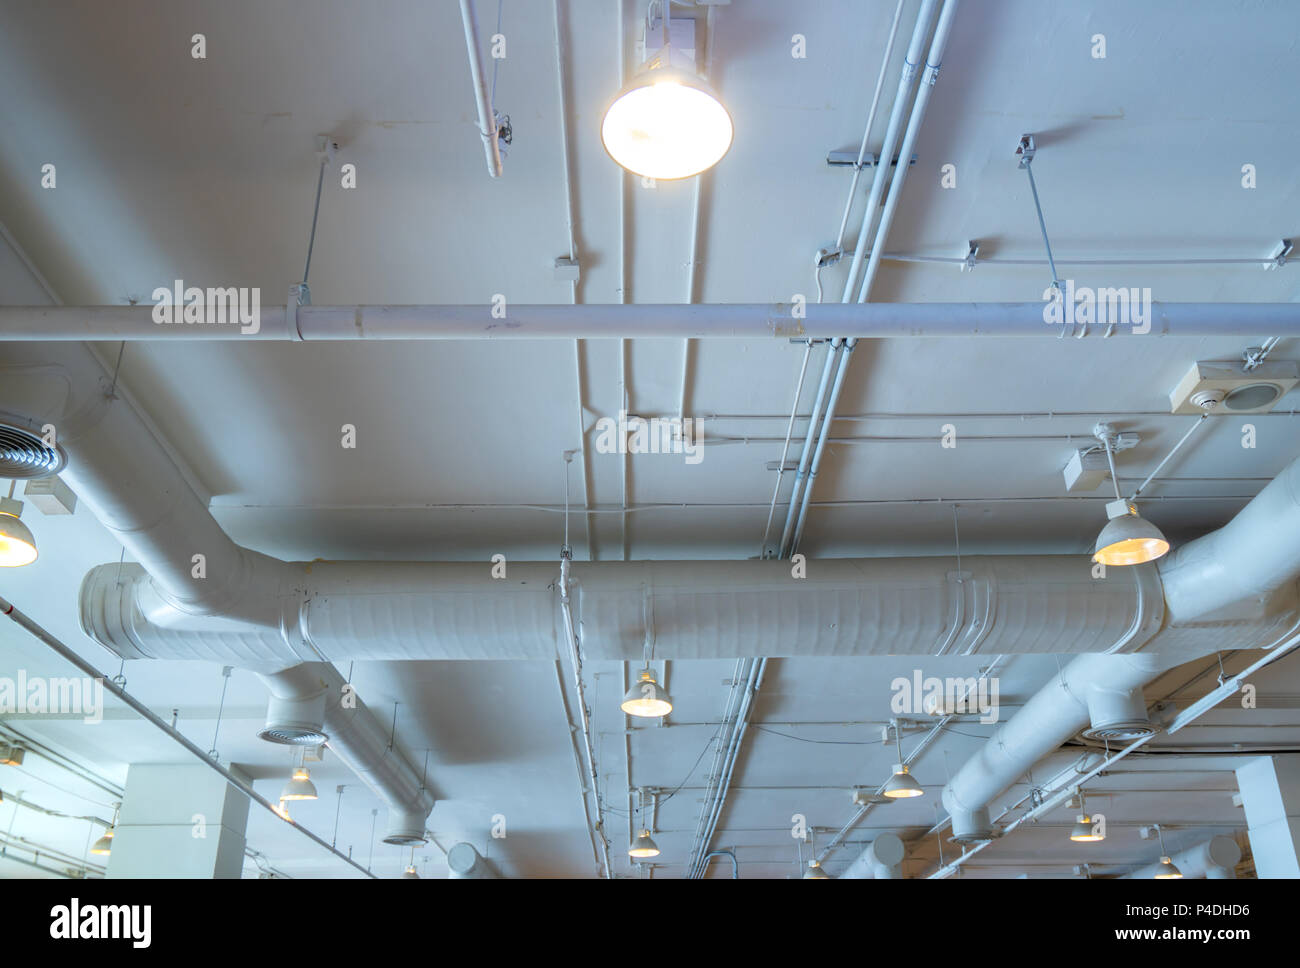 Air Duct Wiring And Plumbing In The Mall Conditioner Pipe System Building Interior Concept